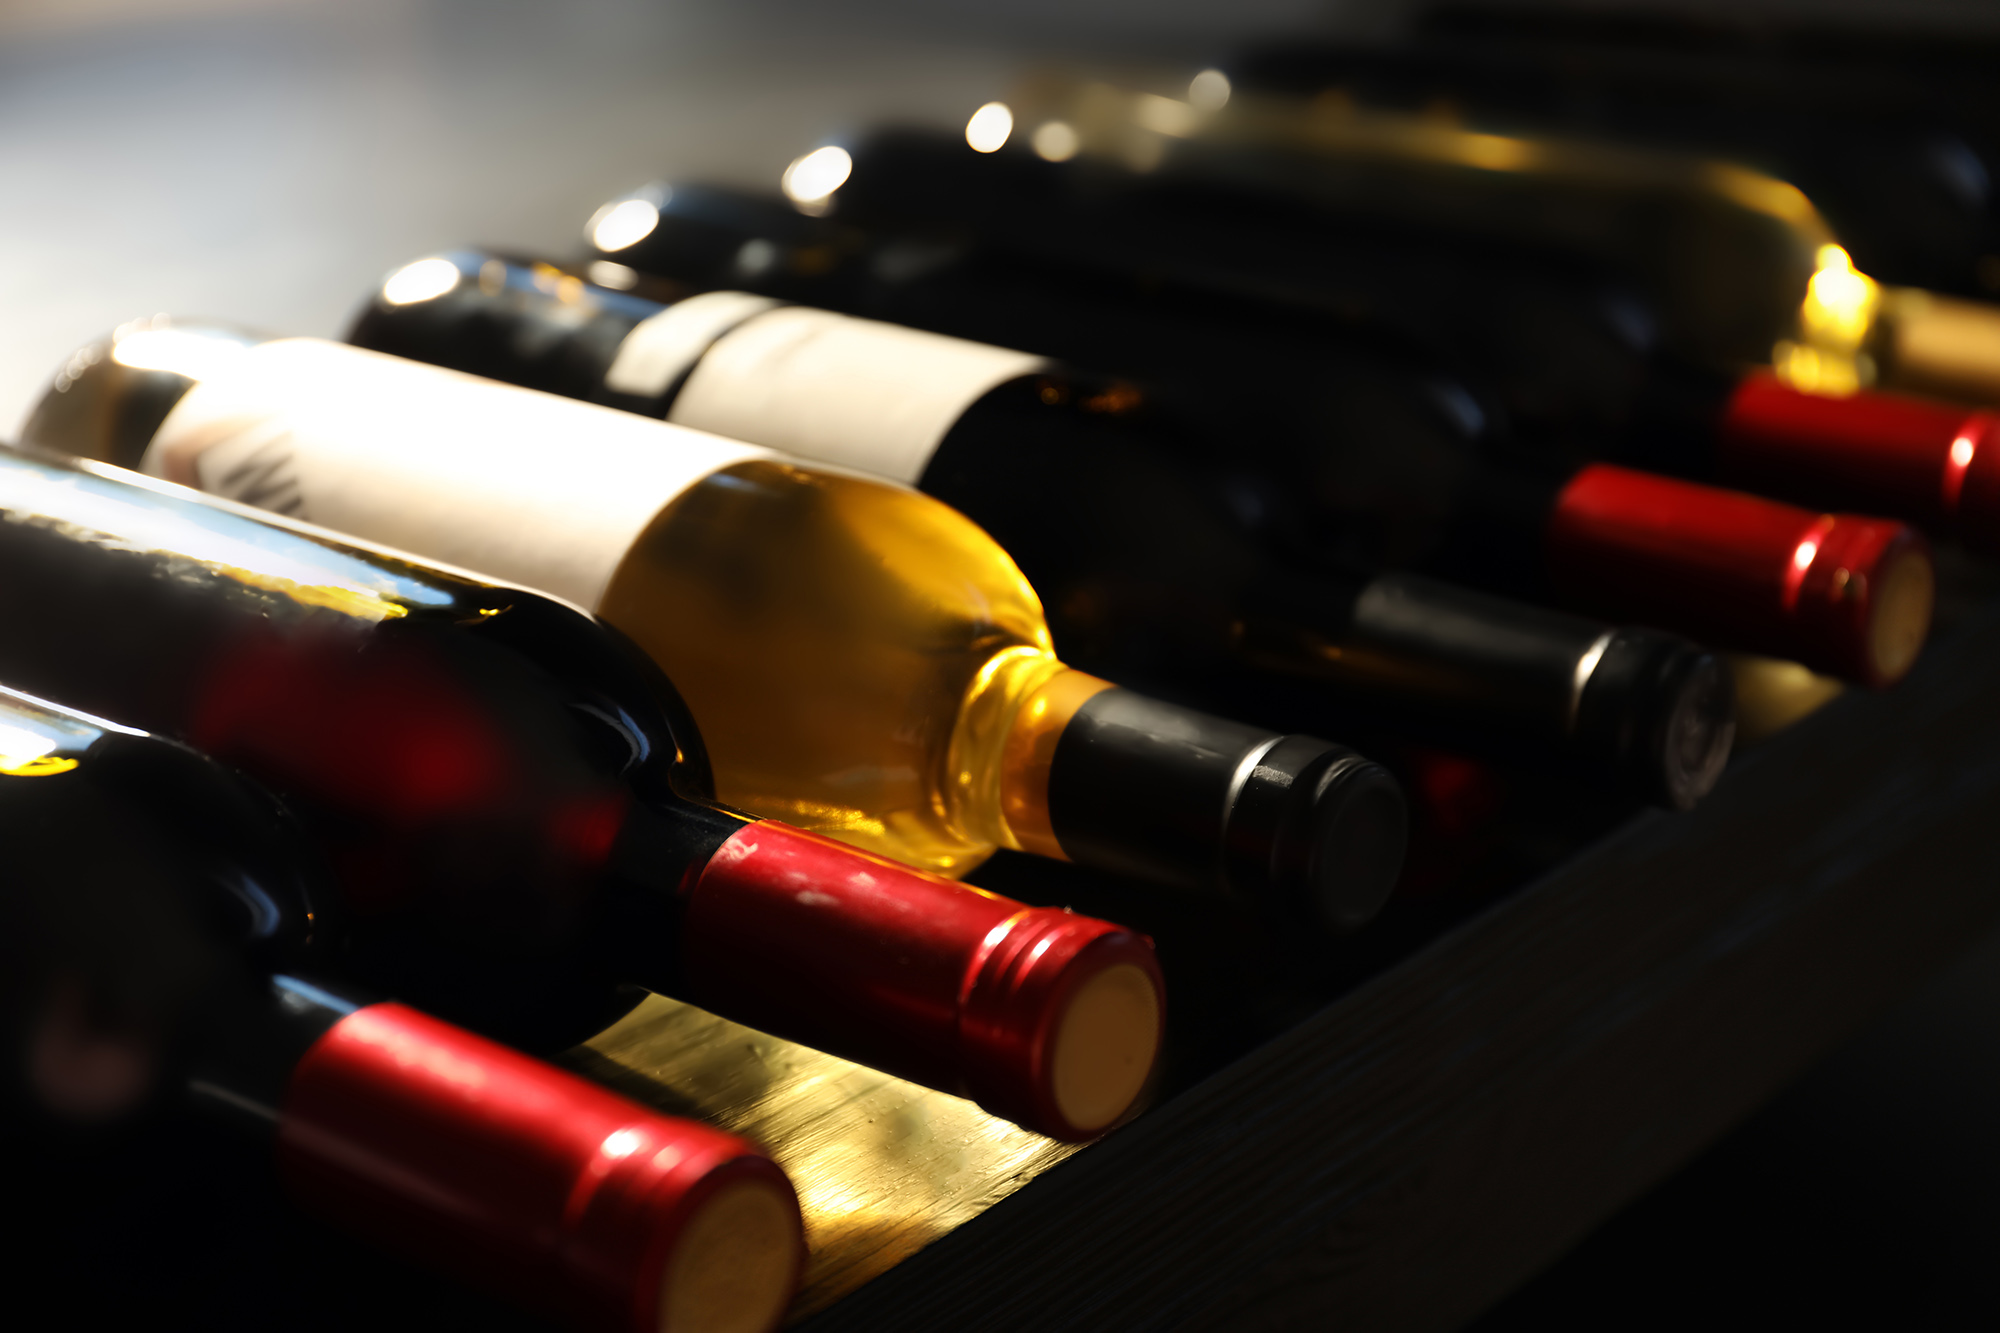 wholesale distributor of wines and spirits participates in an asset based loan